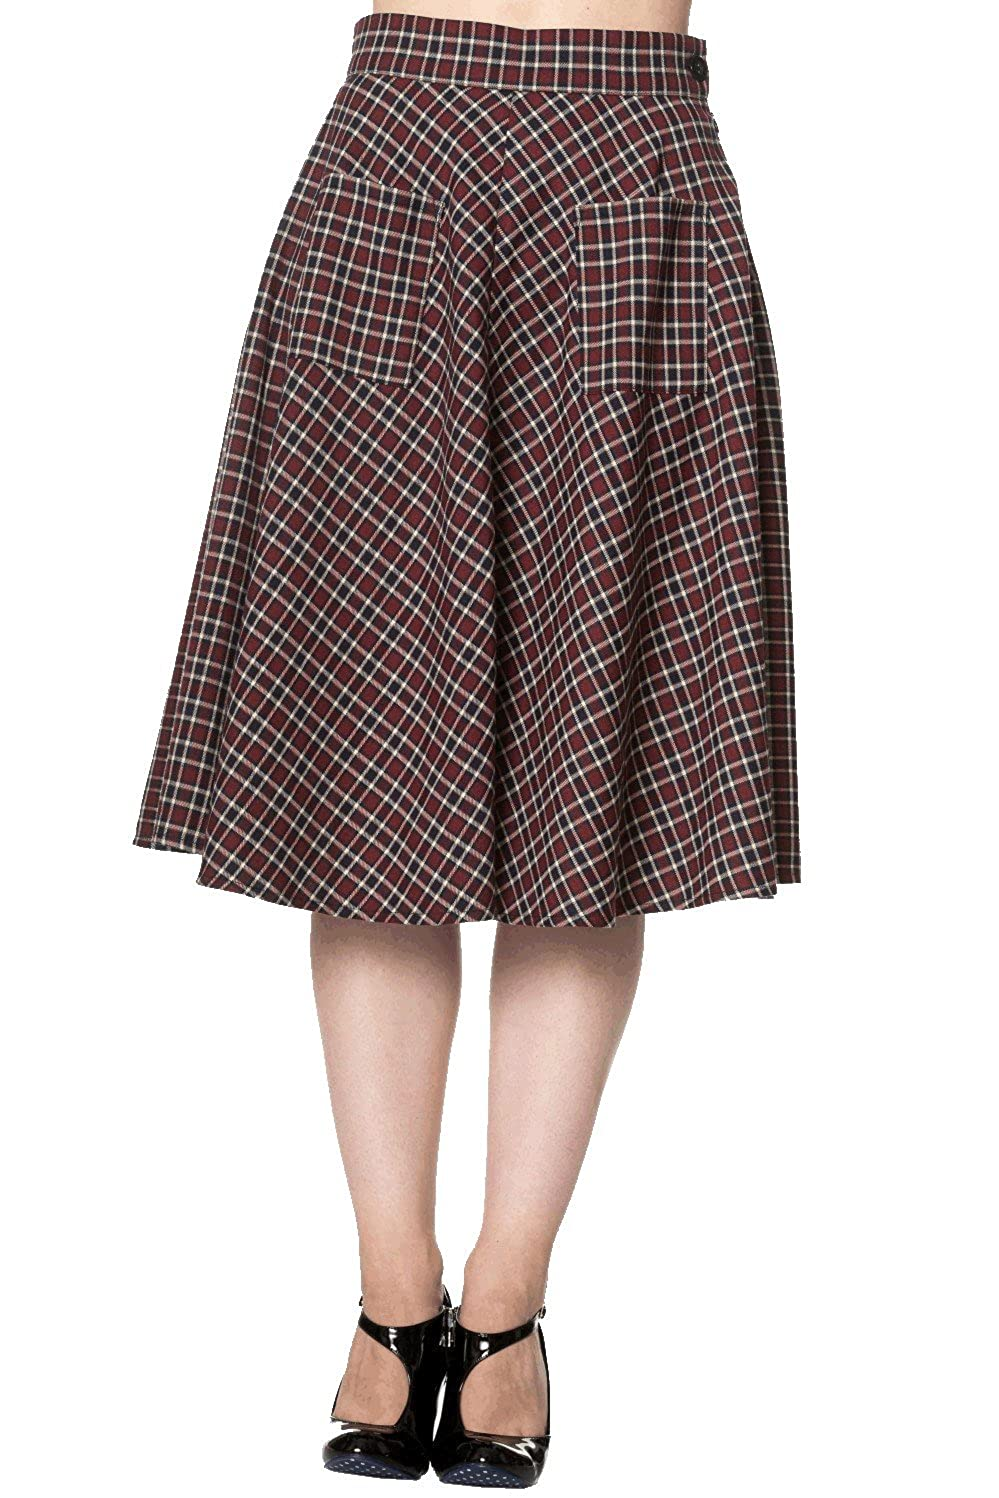 Retro Skirts: Vintage, Pencil, Circle, & Plus Sizes Banned Apparel - Apple of My Eye Skirt $51.73 AT vintagedancer.com